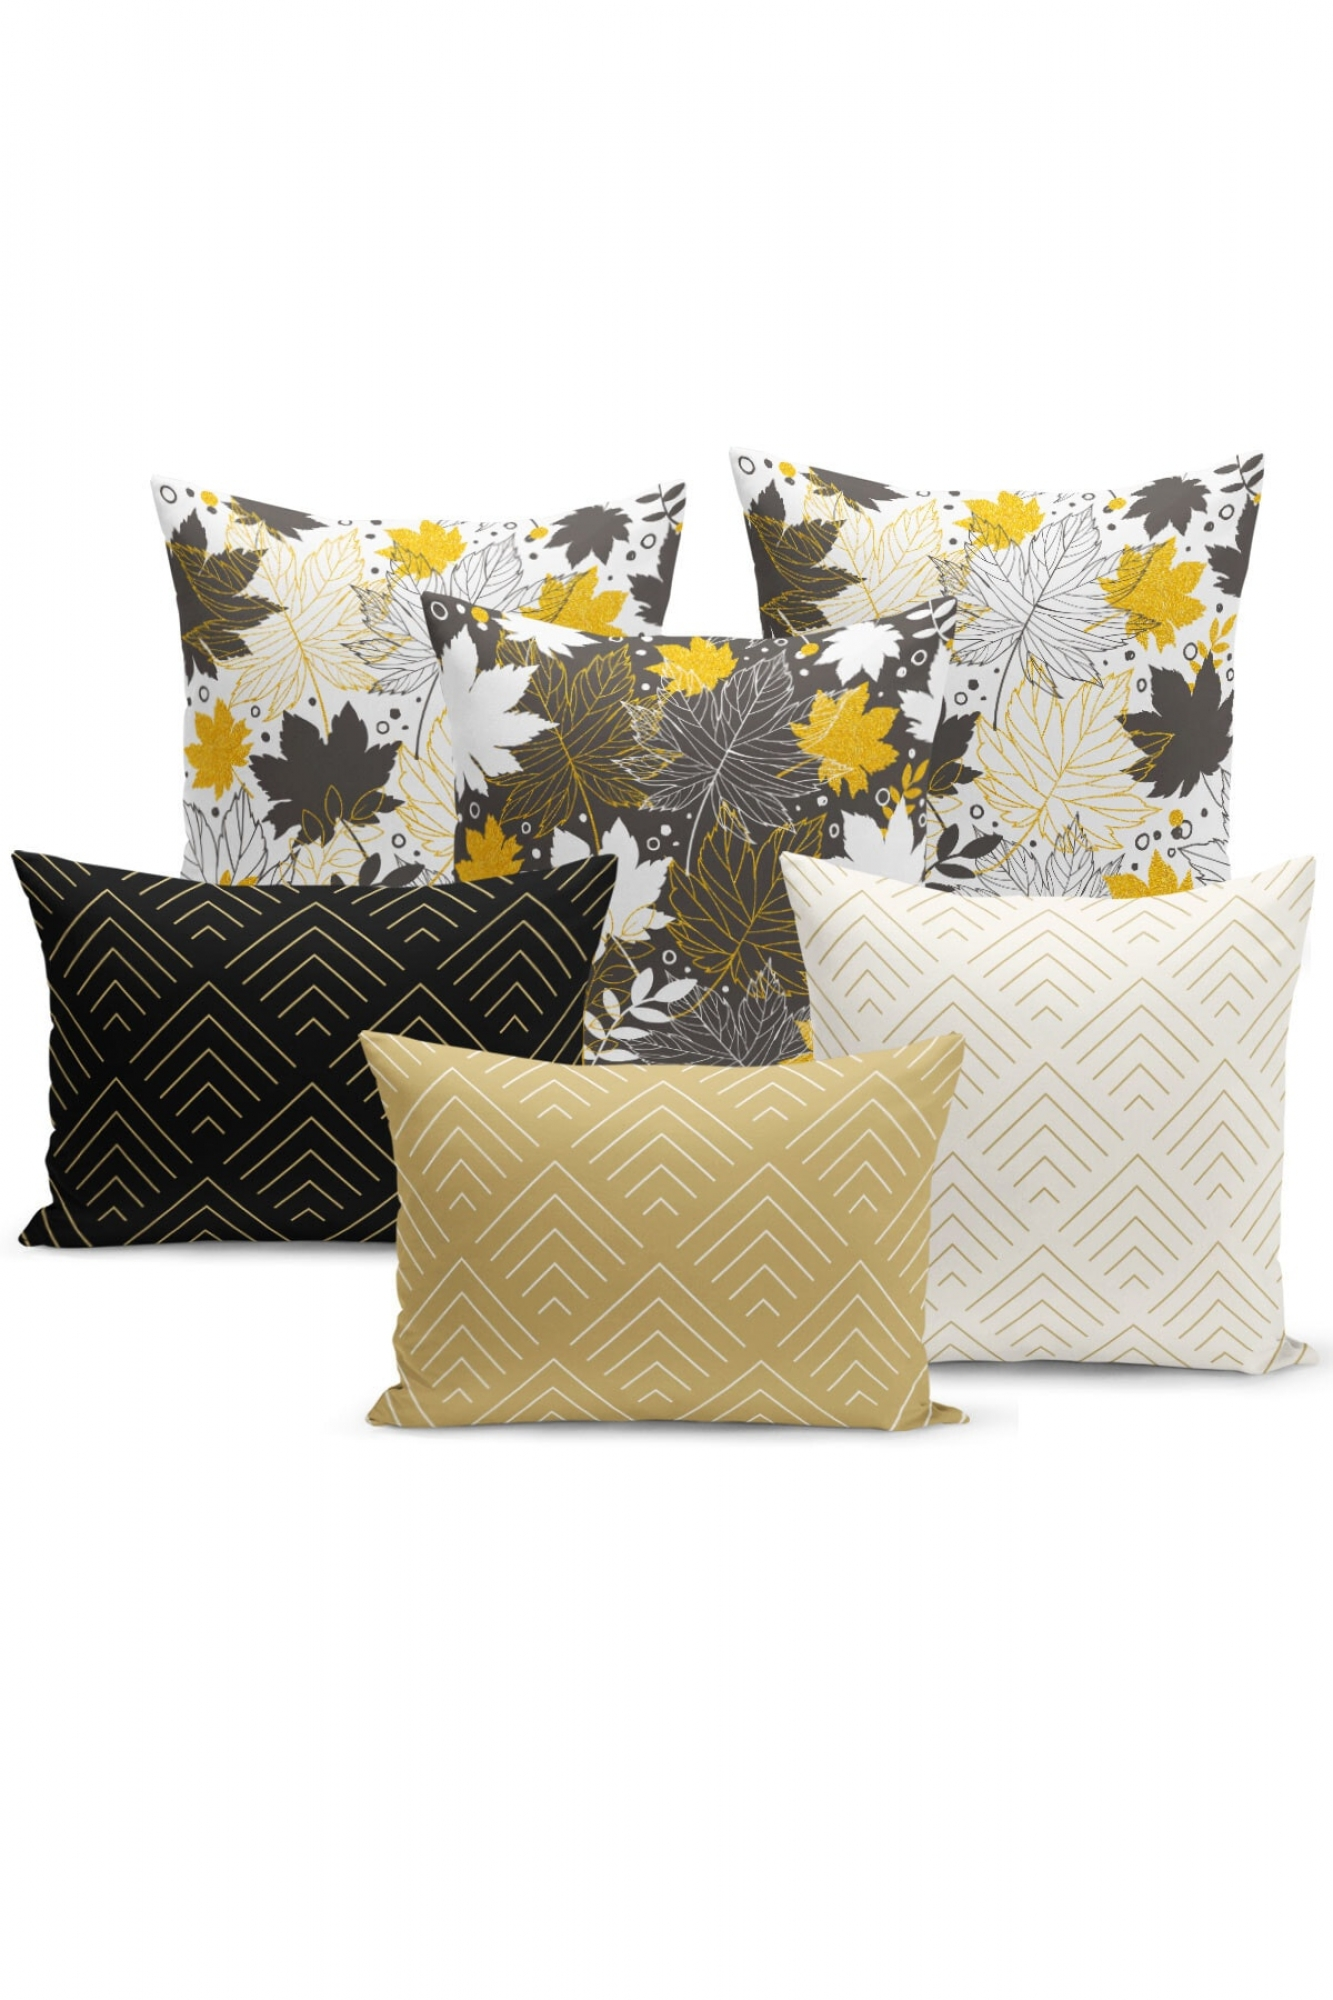 Pillowcases - Set of 6 Flower